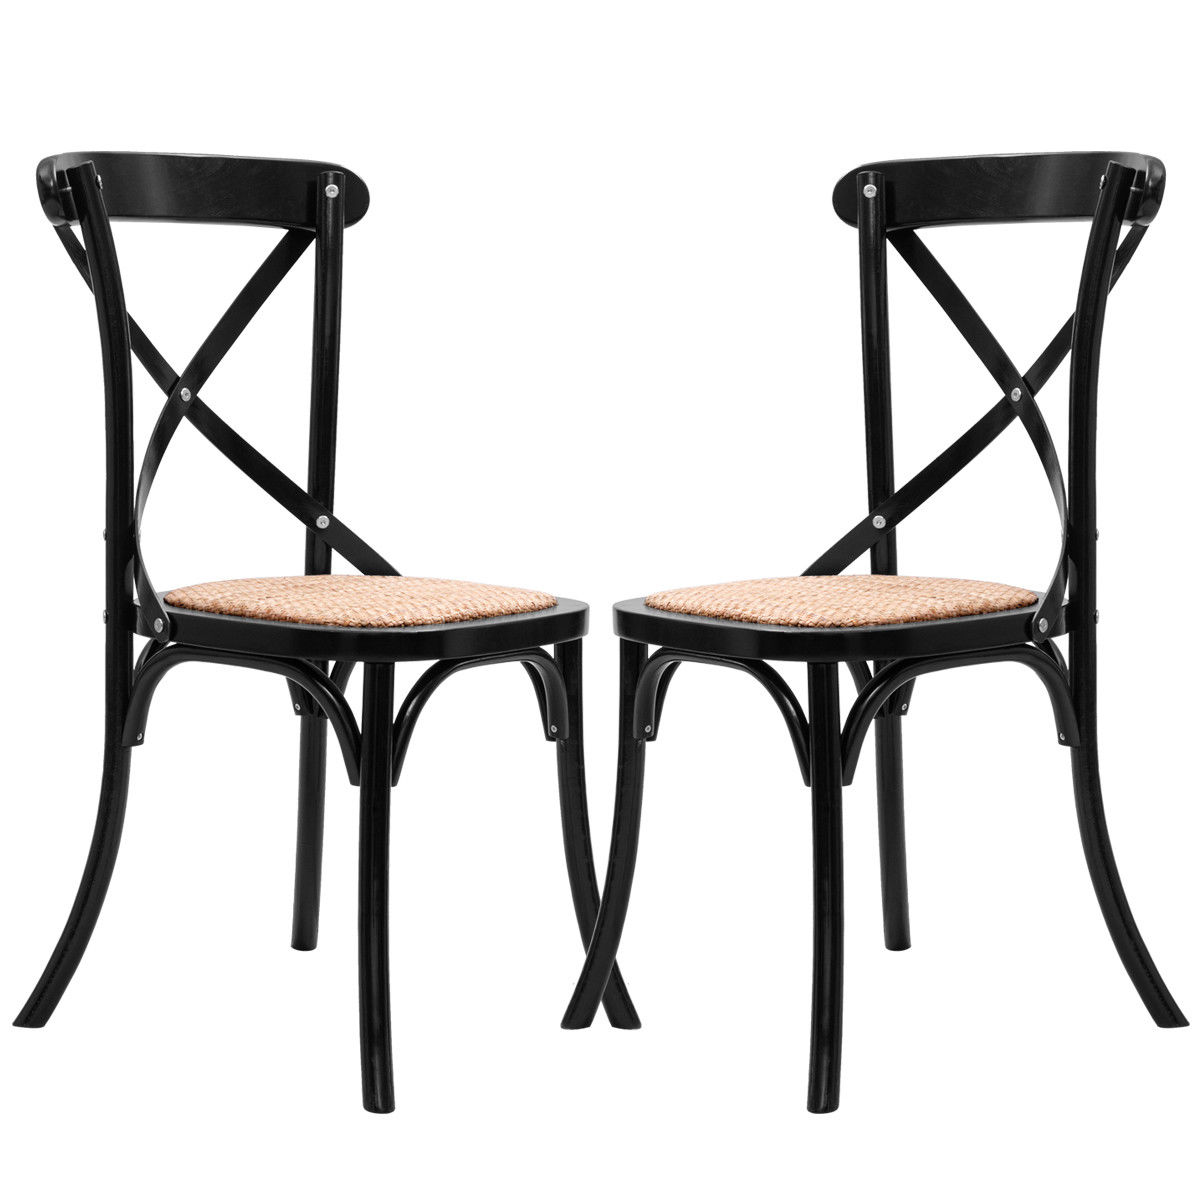 Giantex Set of 2 Cross Back Dining Side Chair Solid Wood Rattan Seat Modern Living Room Dining Room Furniture HW56269BK